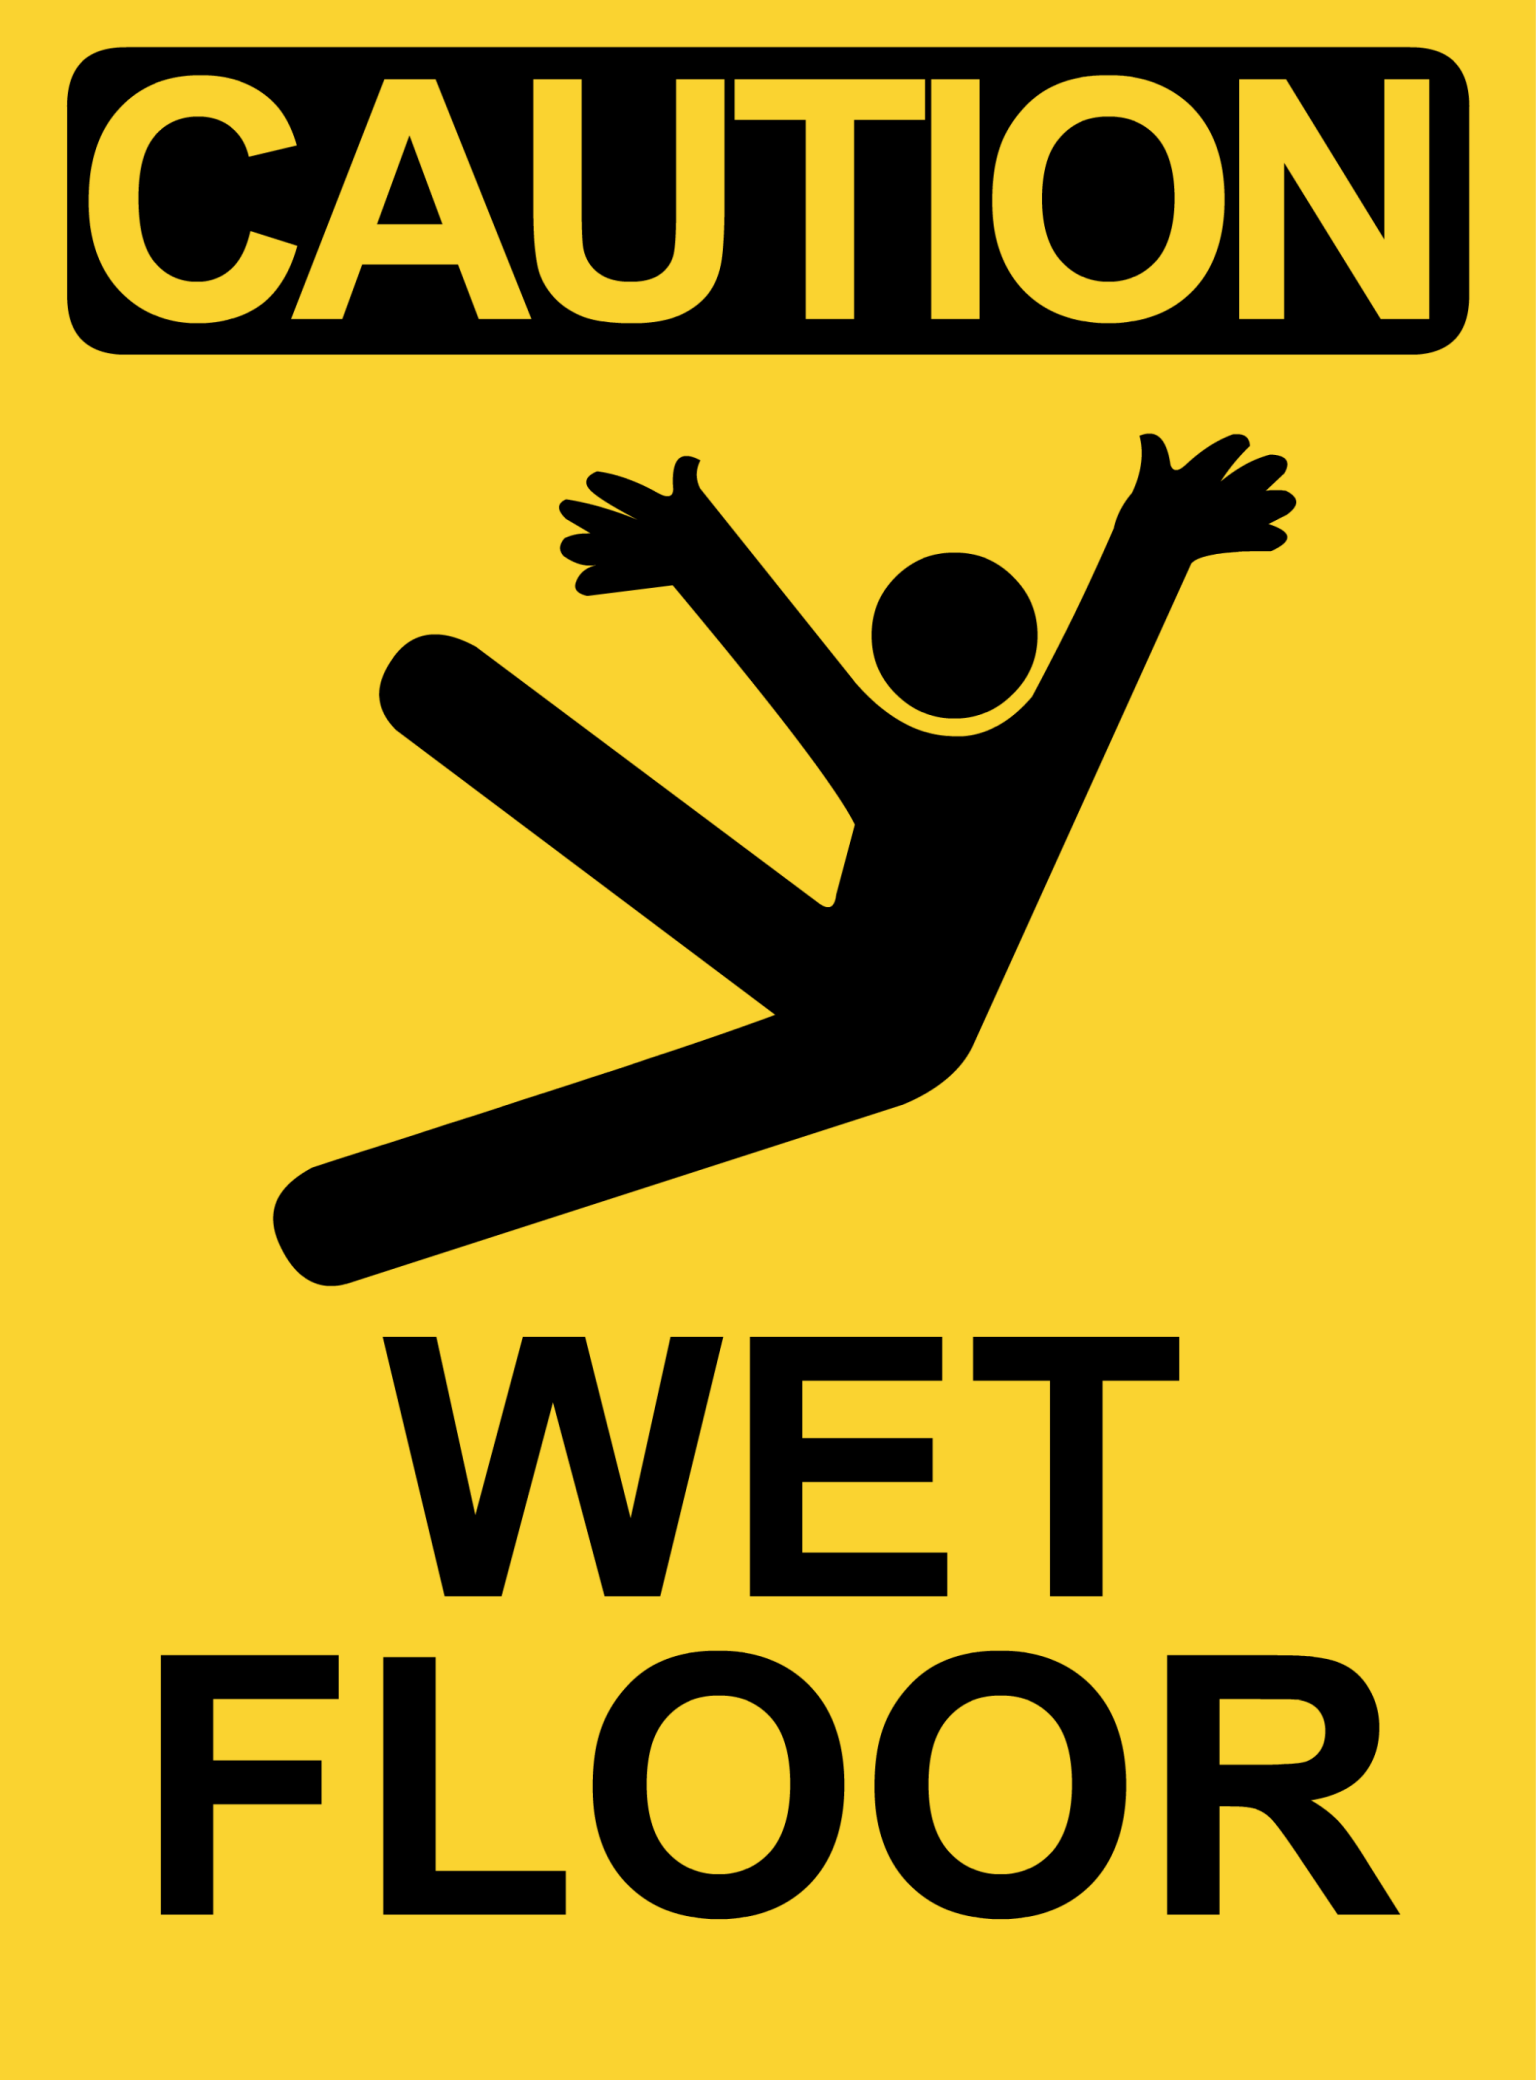 Danger clipart wet floor When Caution wet collection Sign